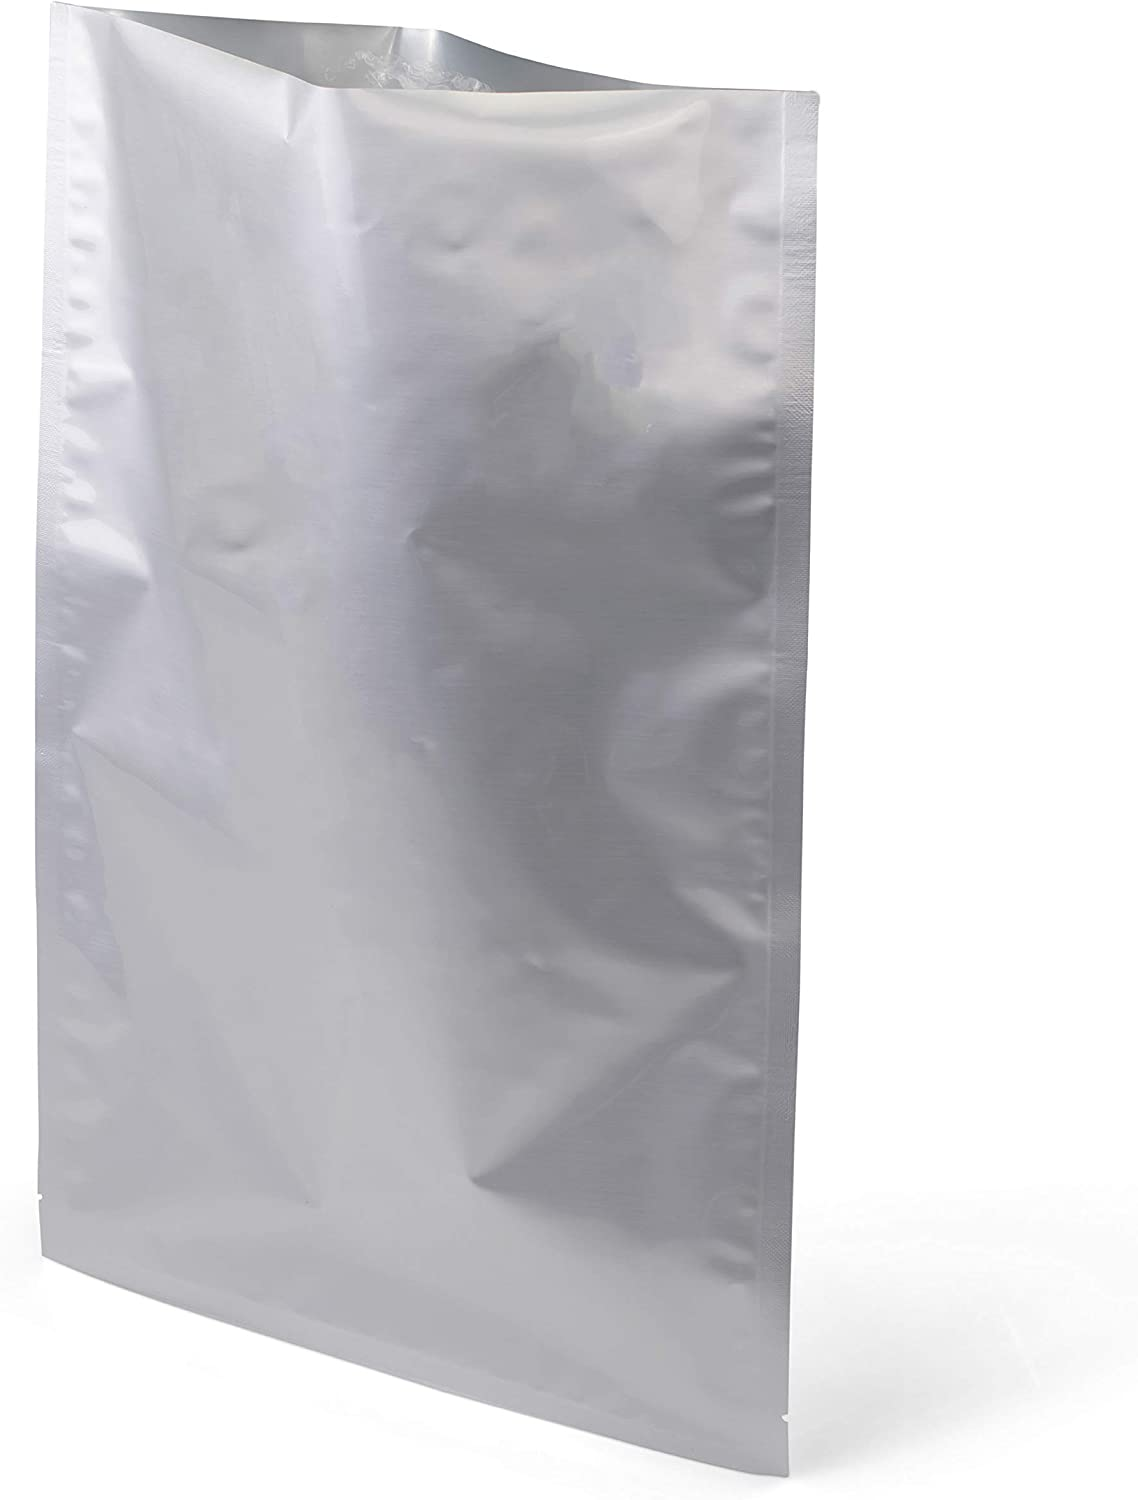 Primor Home 1 Gallon Mylar Bags - 10